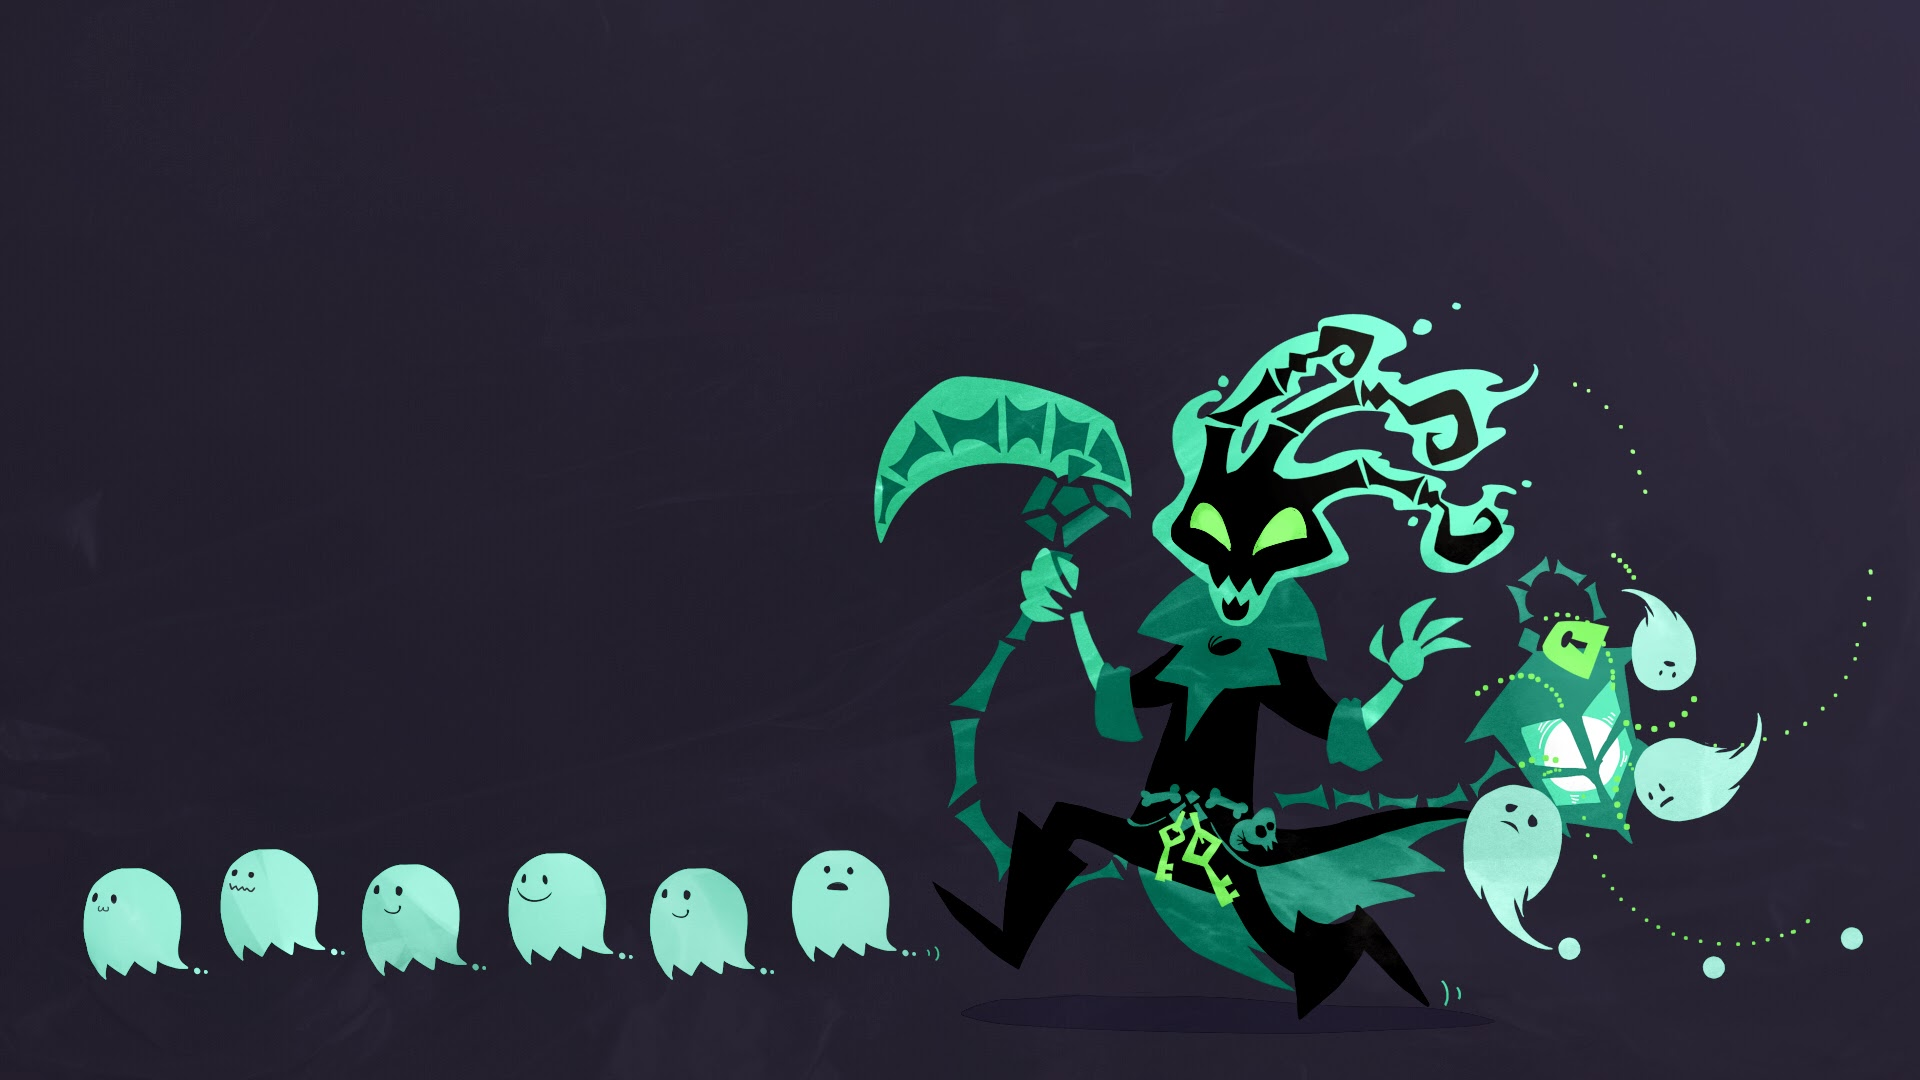 Free Download Thresh League Of Legends 1080p 1d Hd Wallpaper